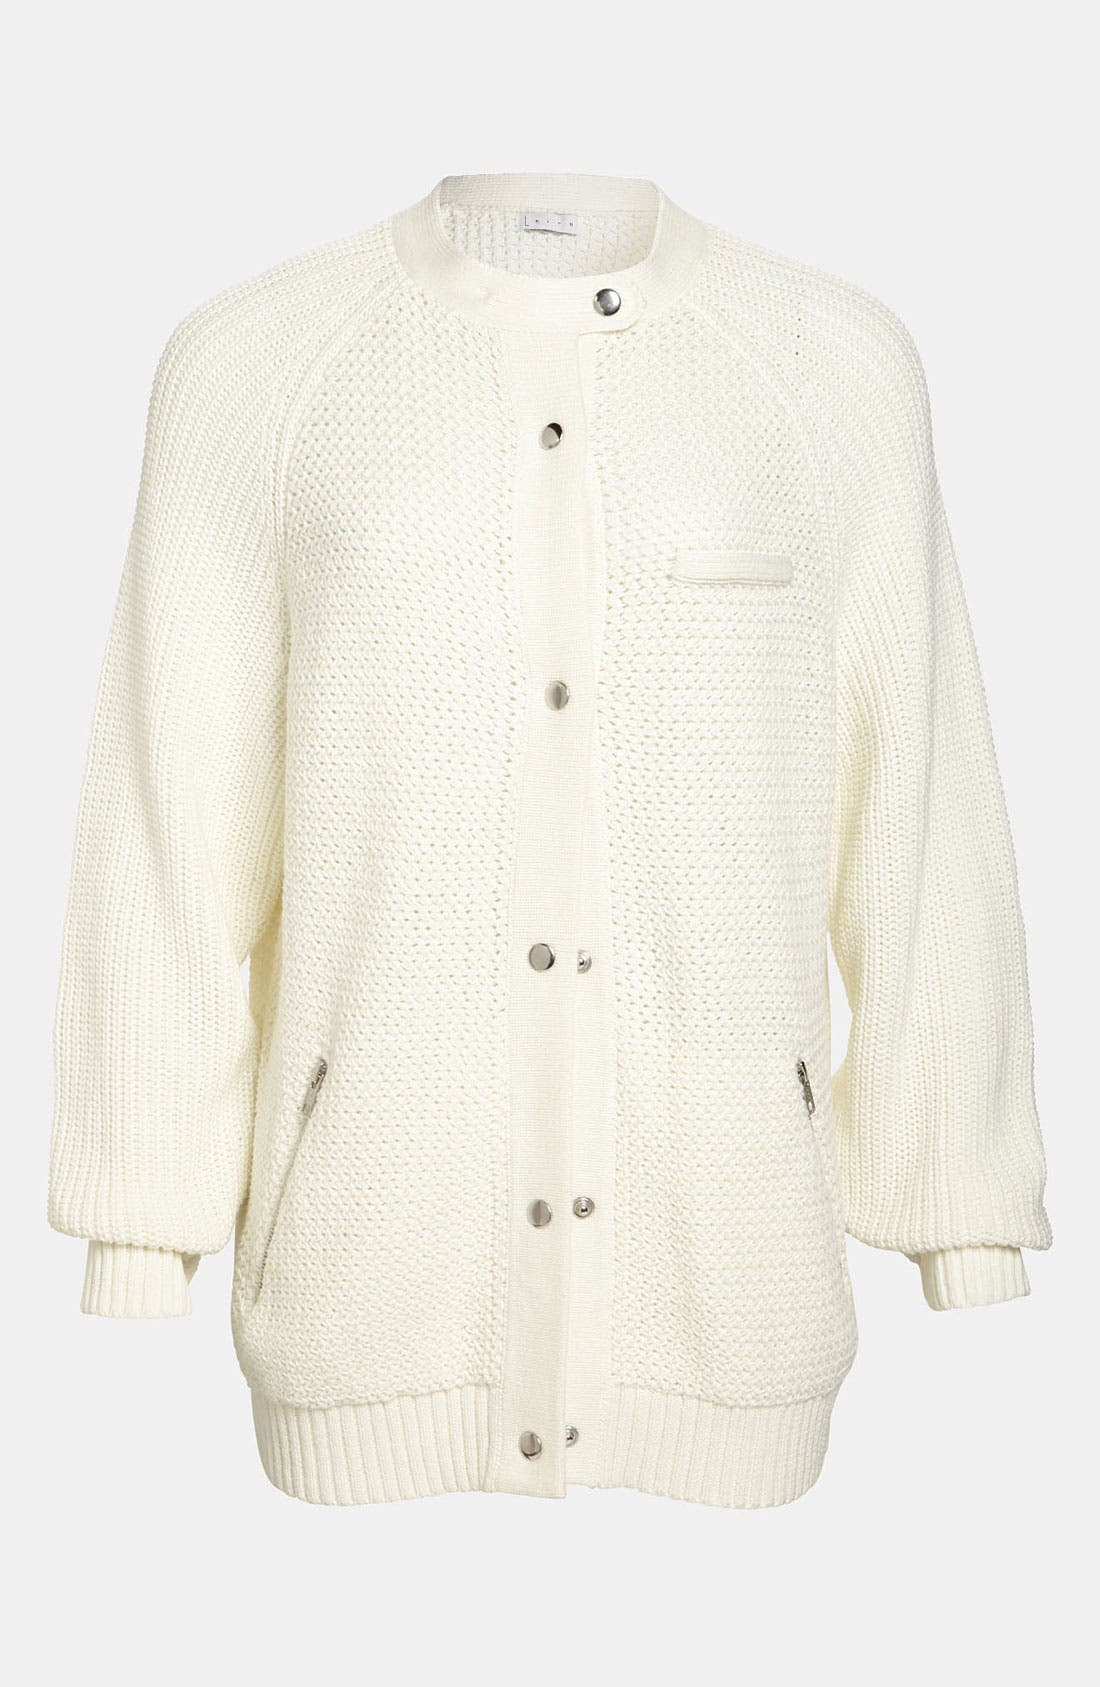 Alternate Image 1 Selected - Leith 'Sports' Knit Bomber Cardigan